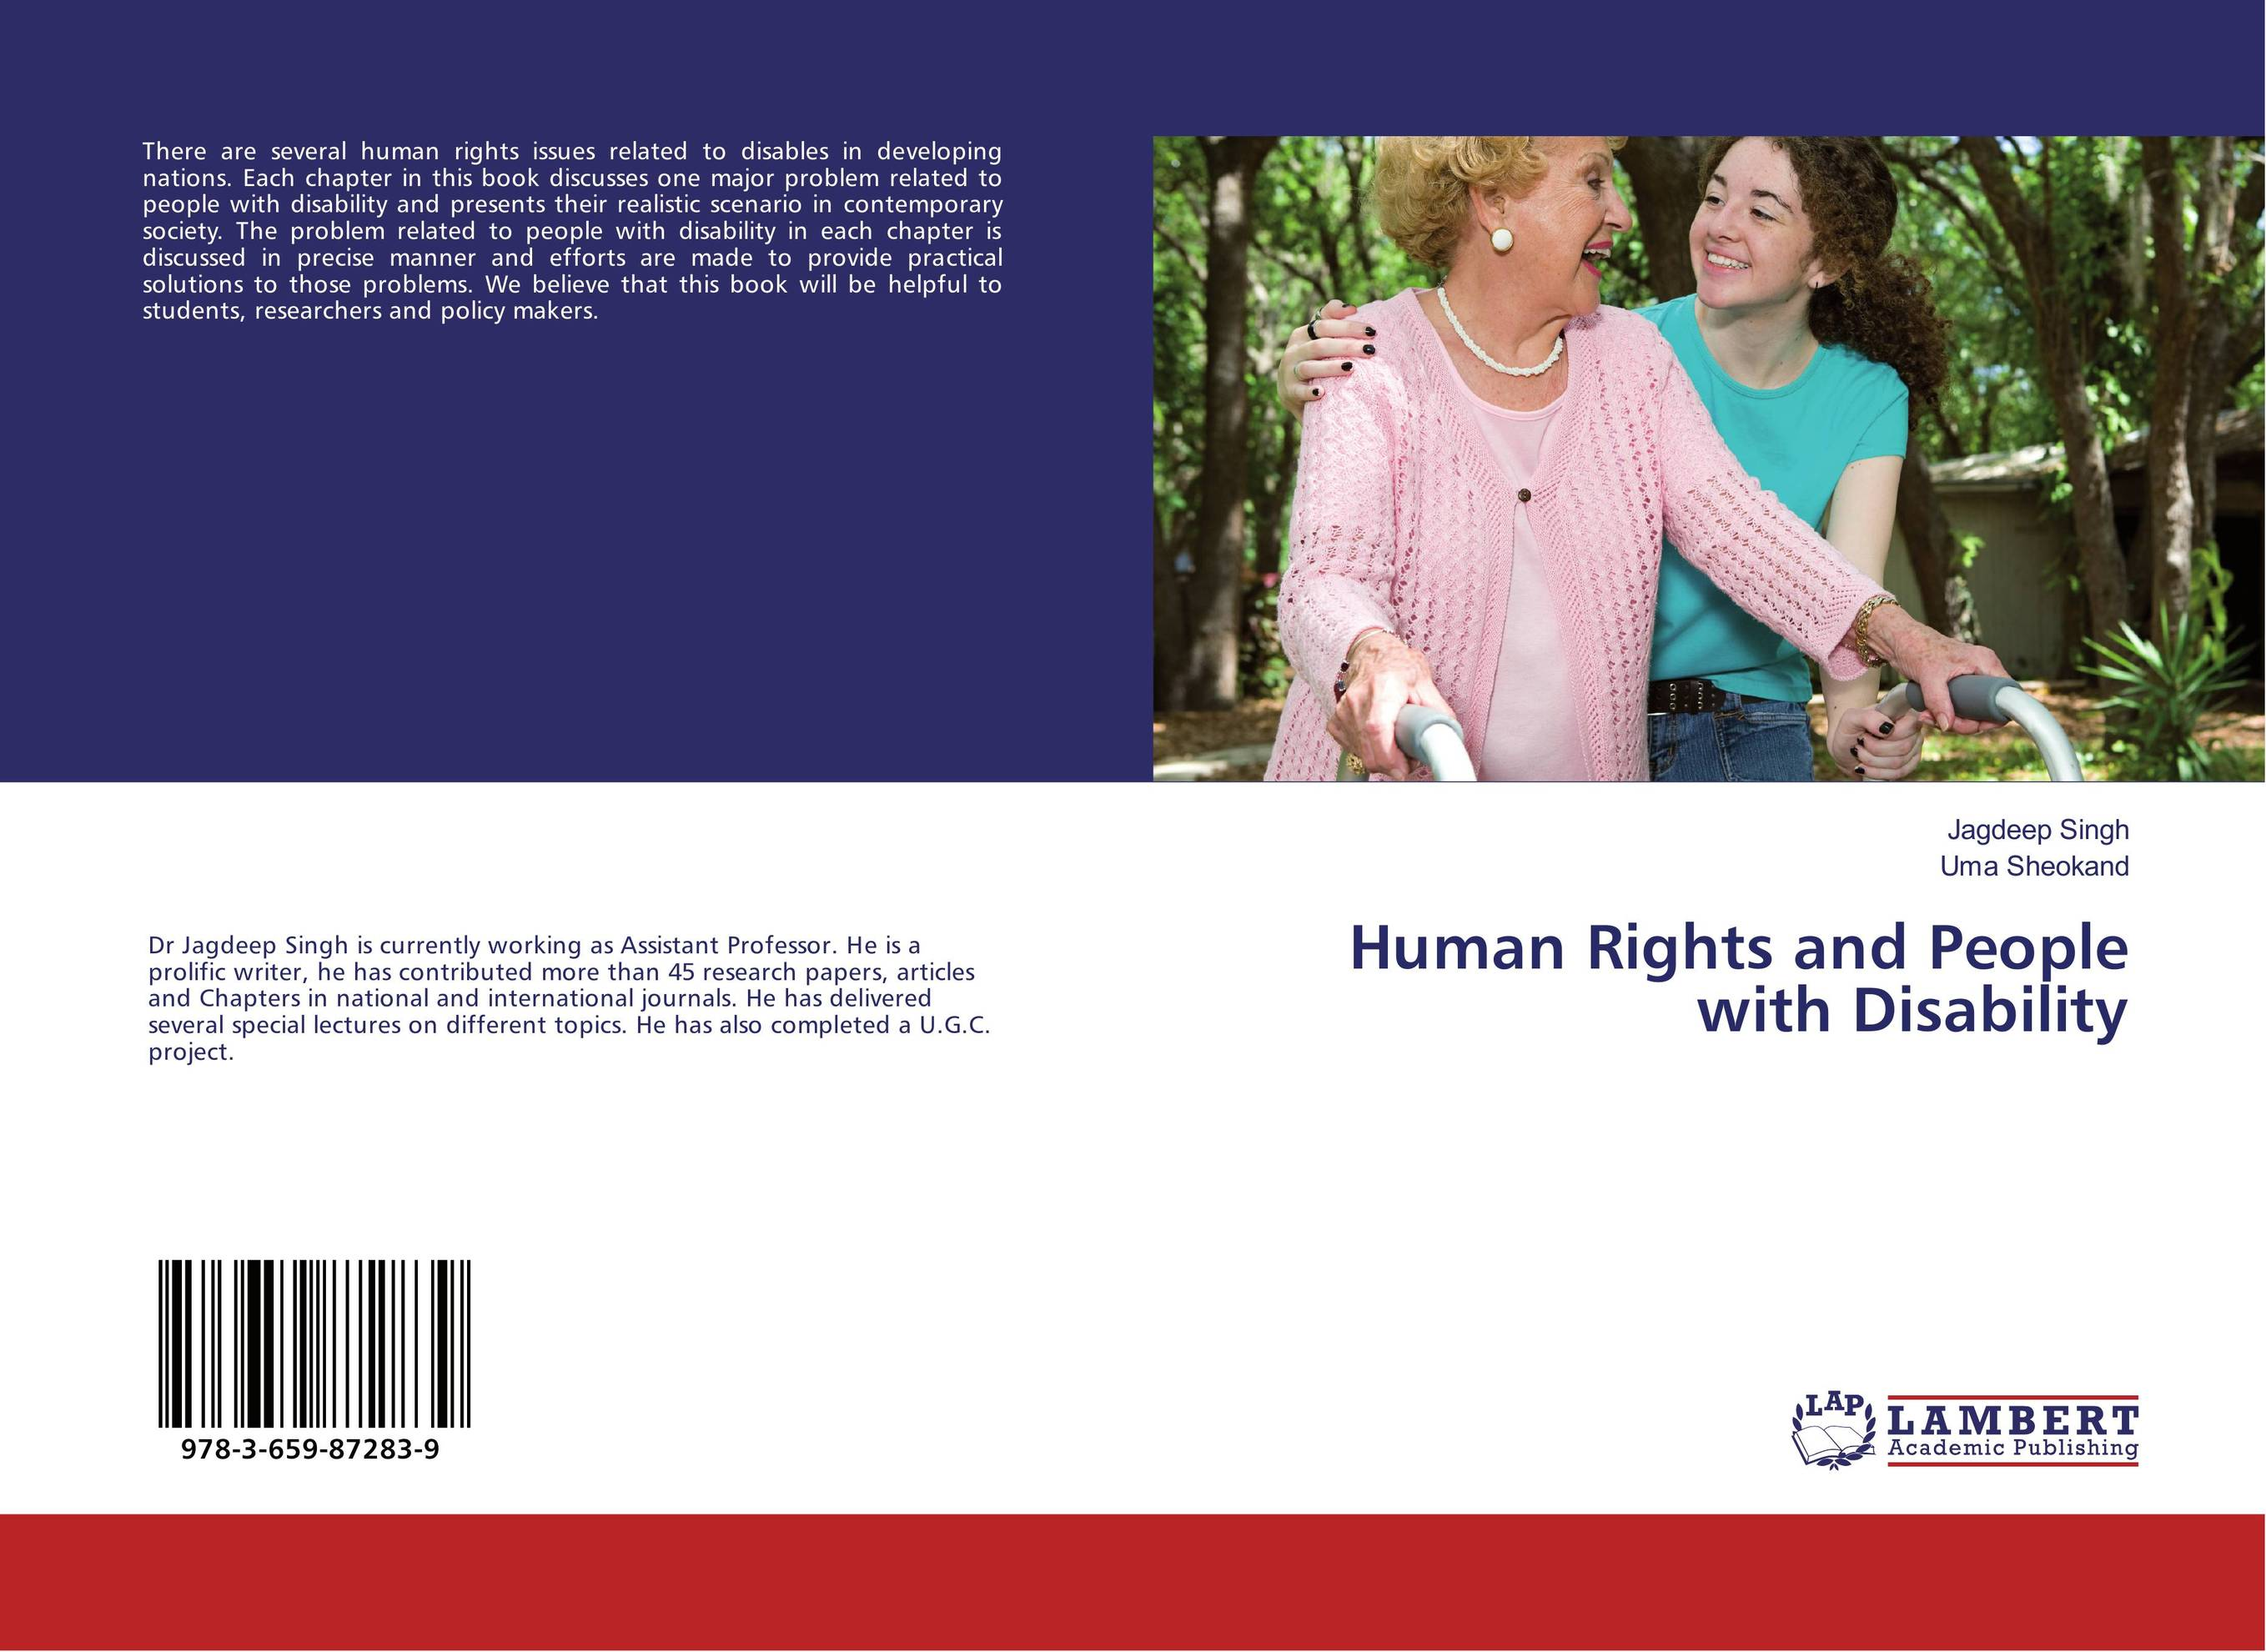 Human Rights and People with Disability human rights and people with disability